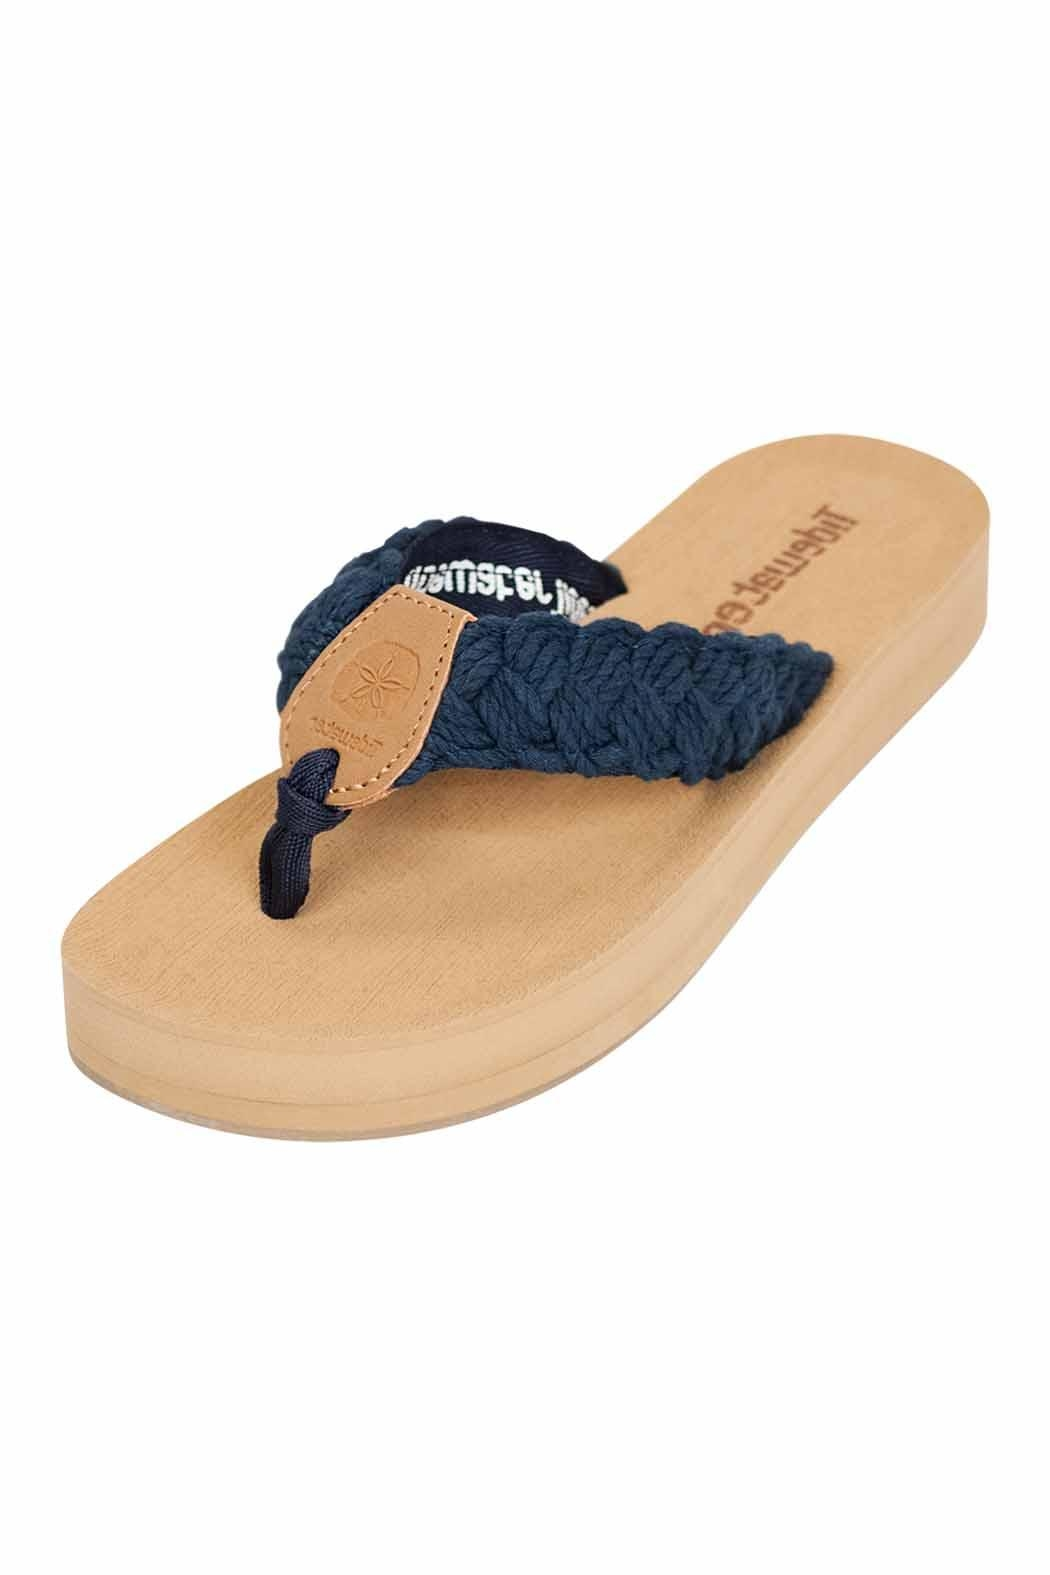 195f628a40b1 Tidewater Sandals Braided Navy Sandal from Richmond by Trend ...